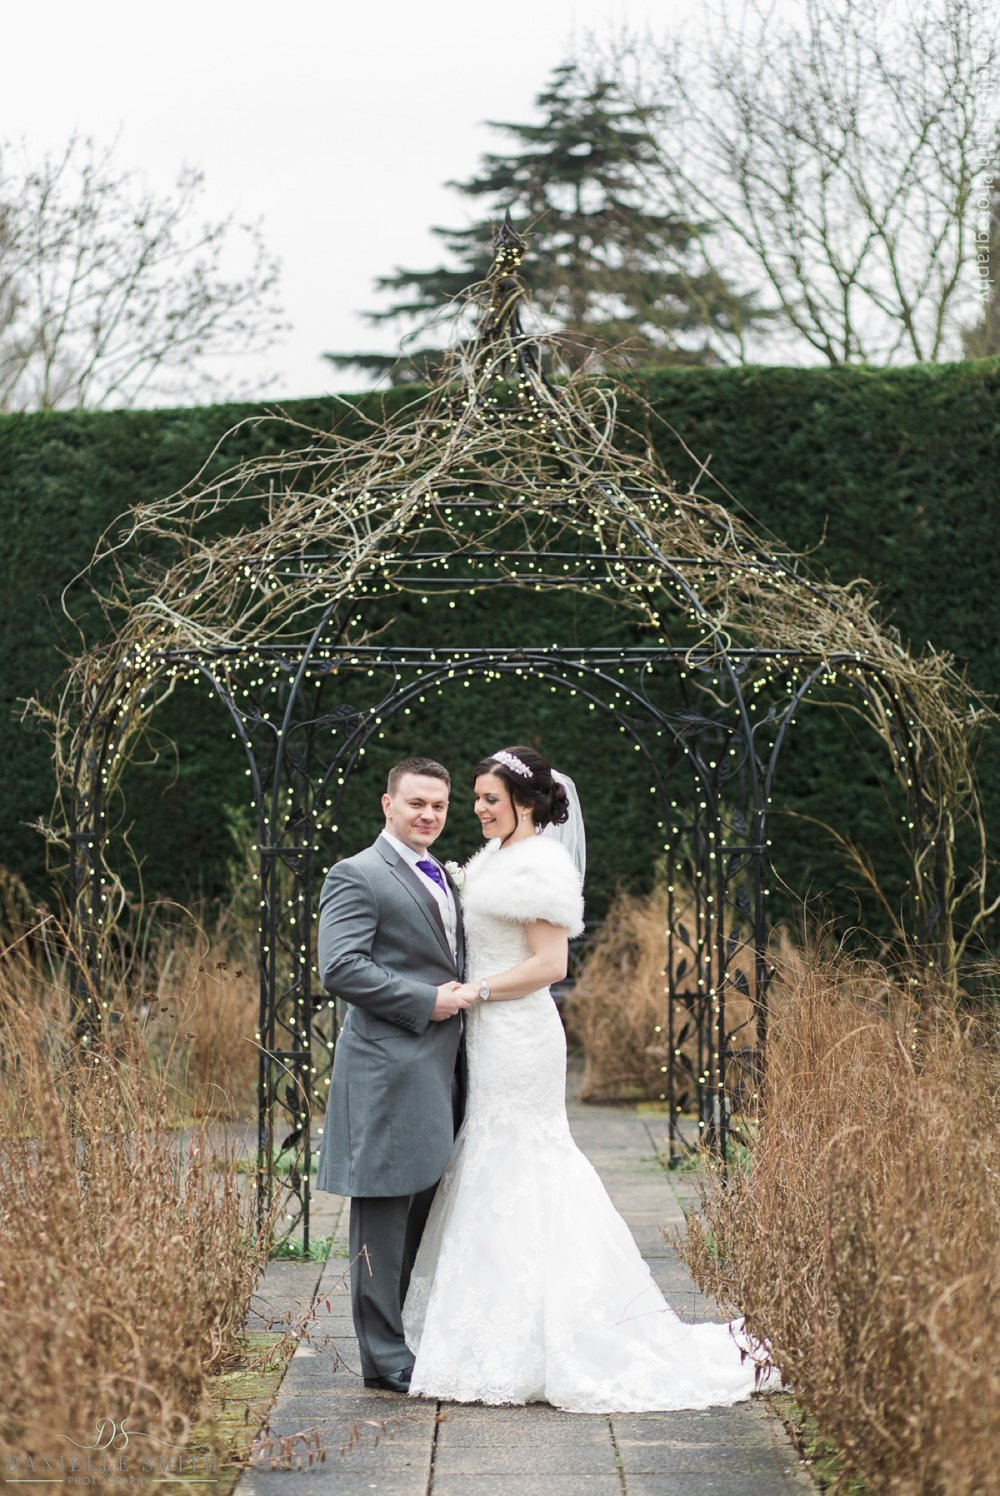 Gaynes park winter wedding 70.jpg